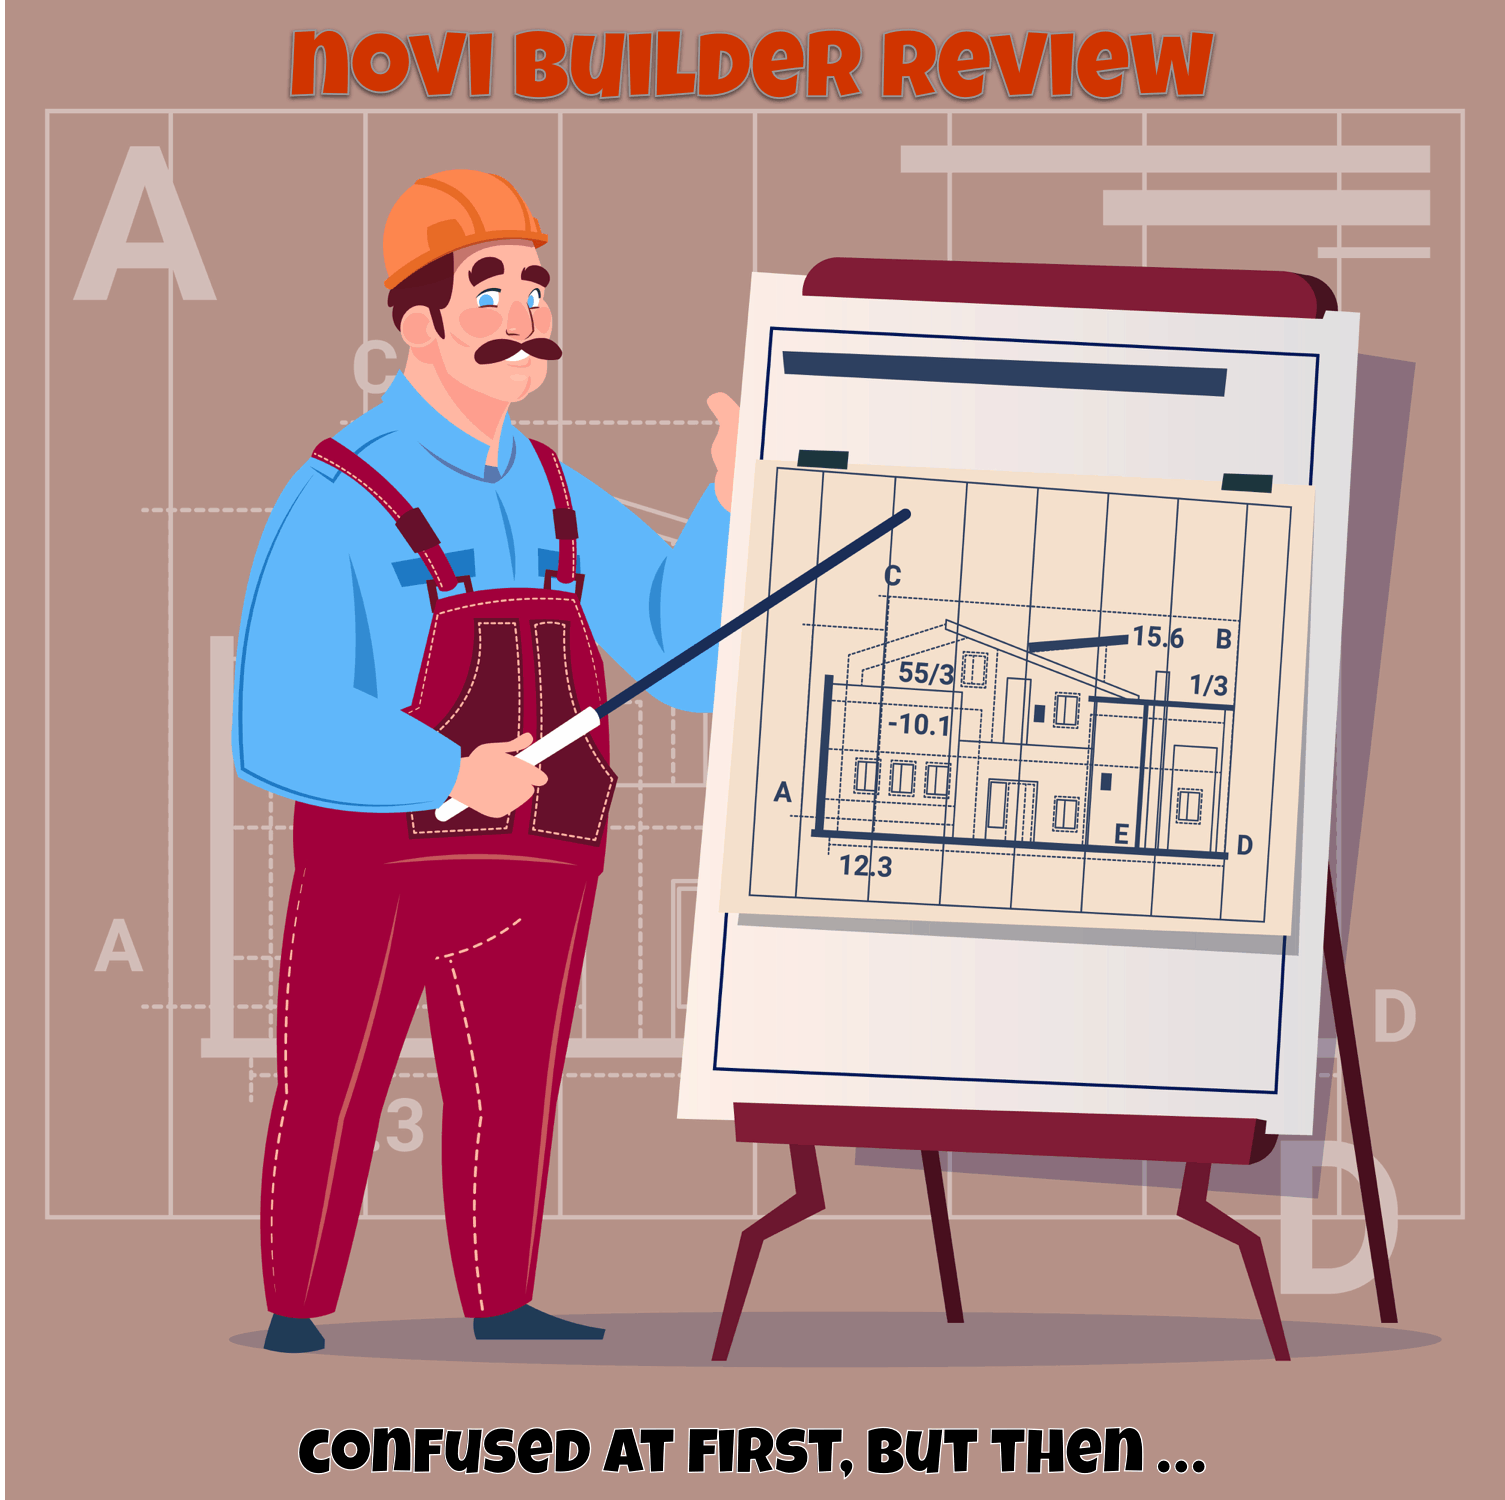 novi builder review